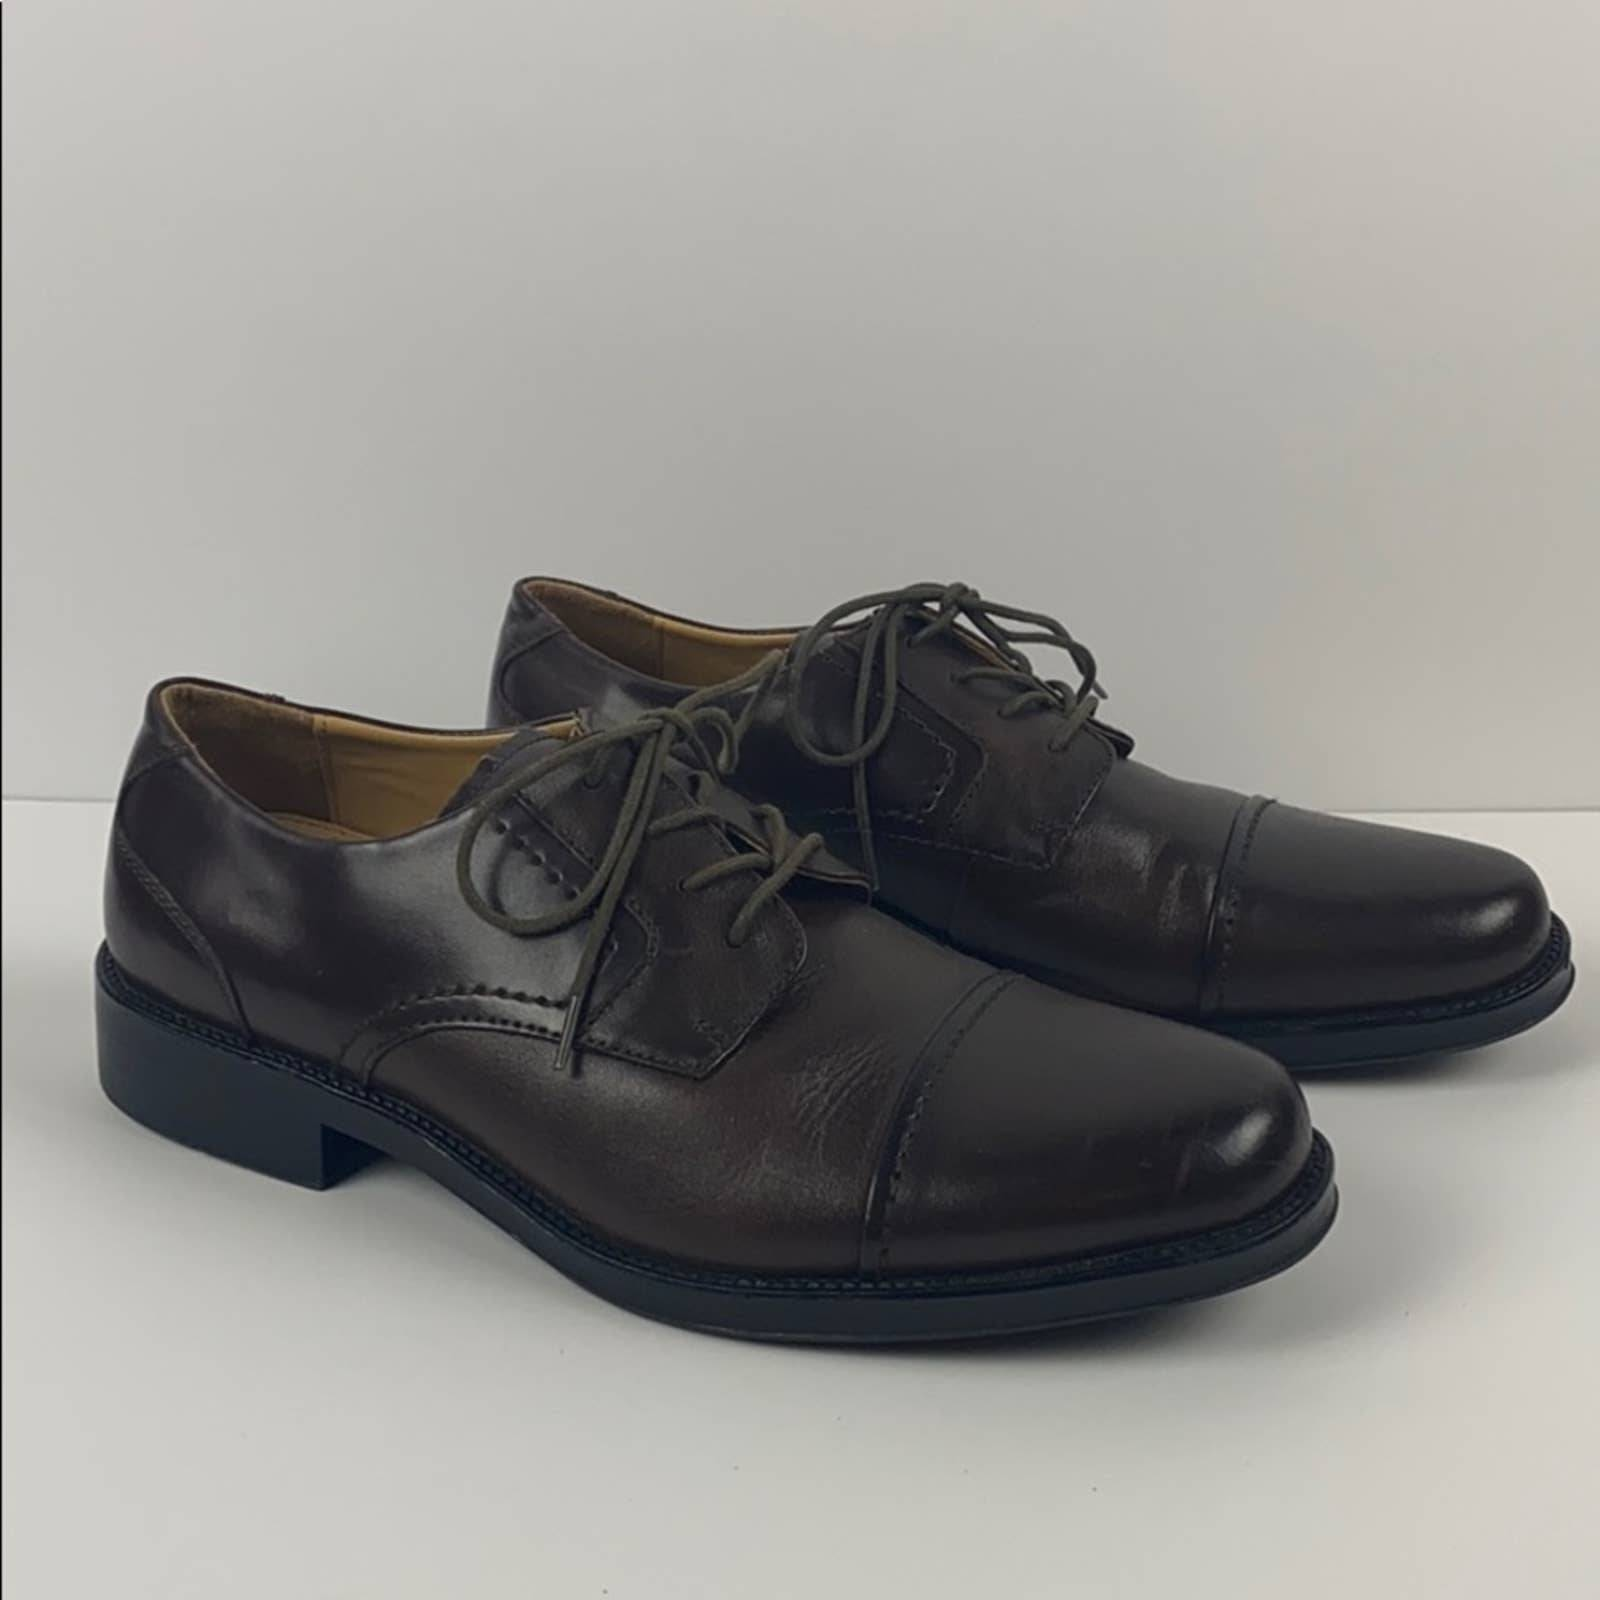 Dockers mens lace up leather dress shoes